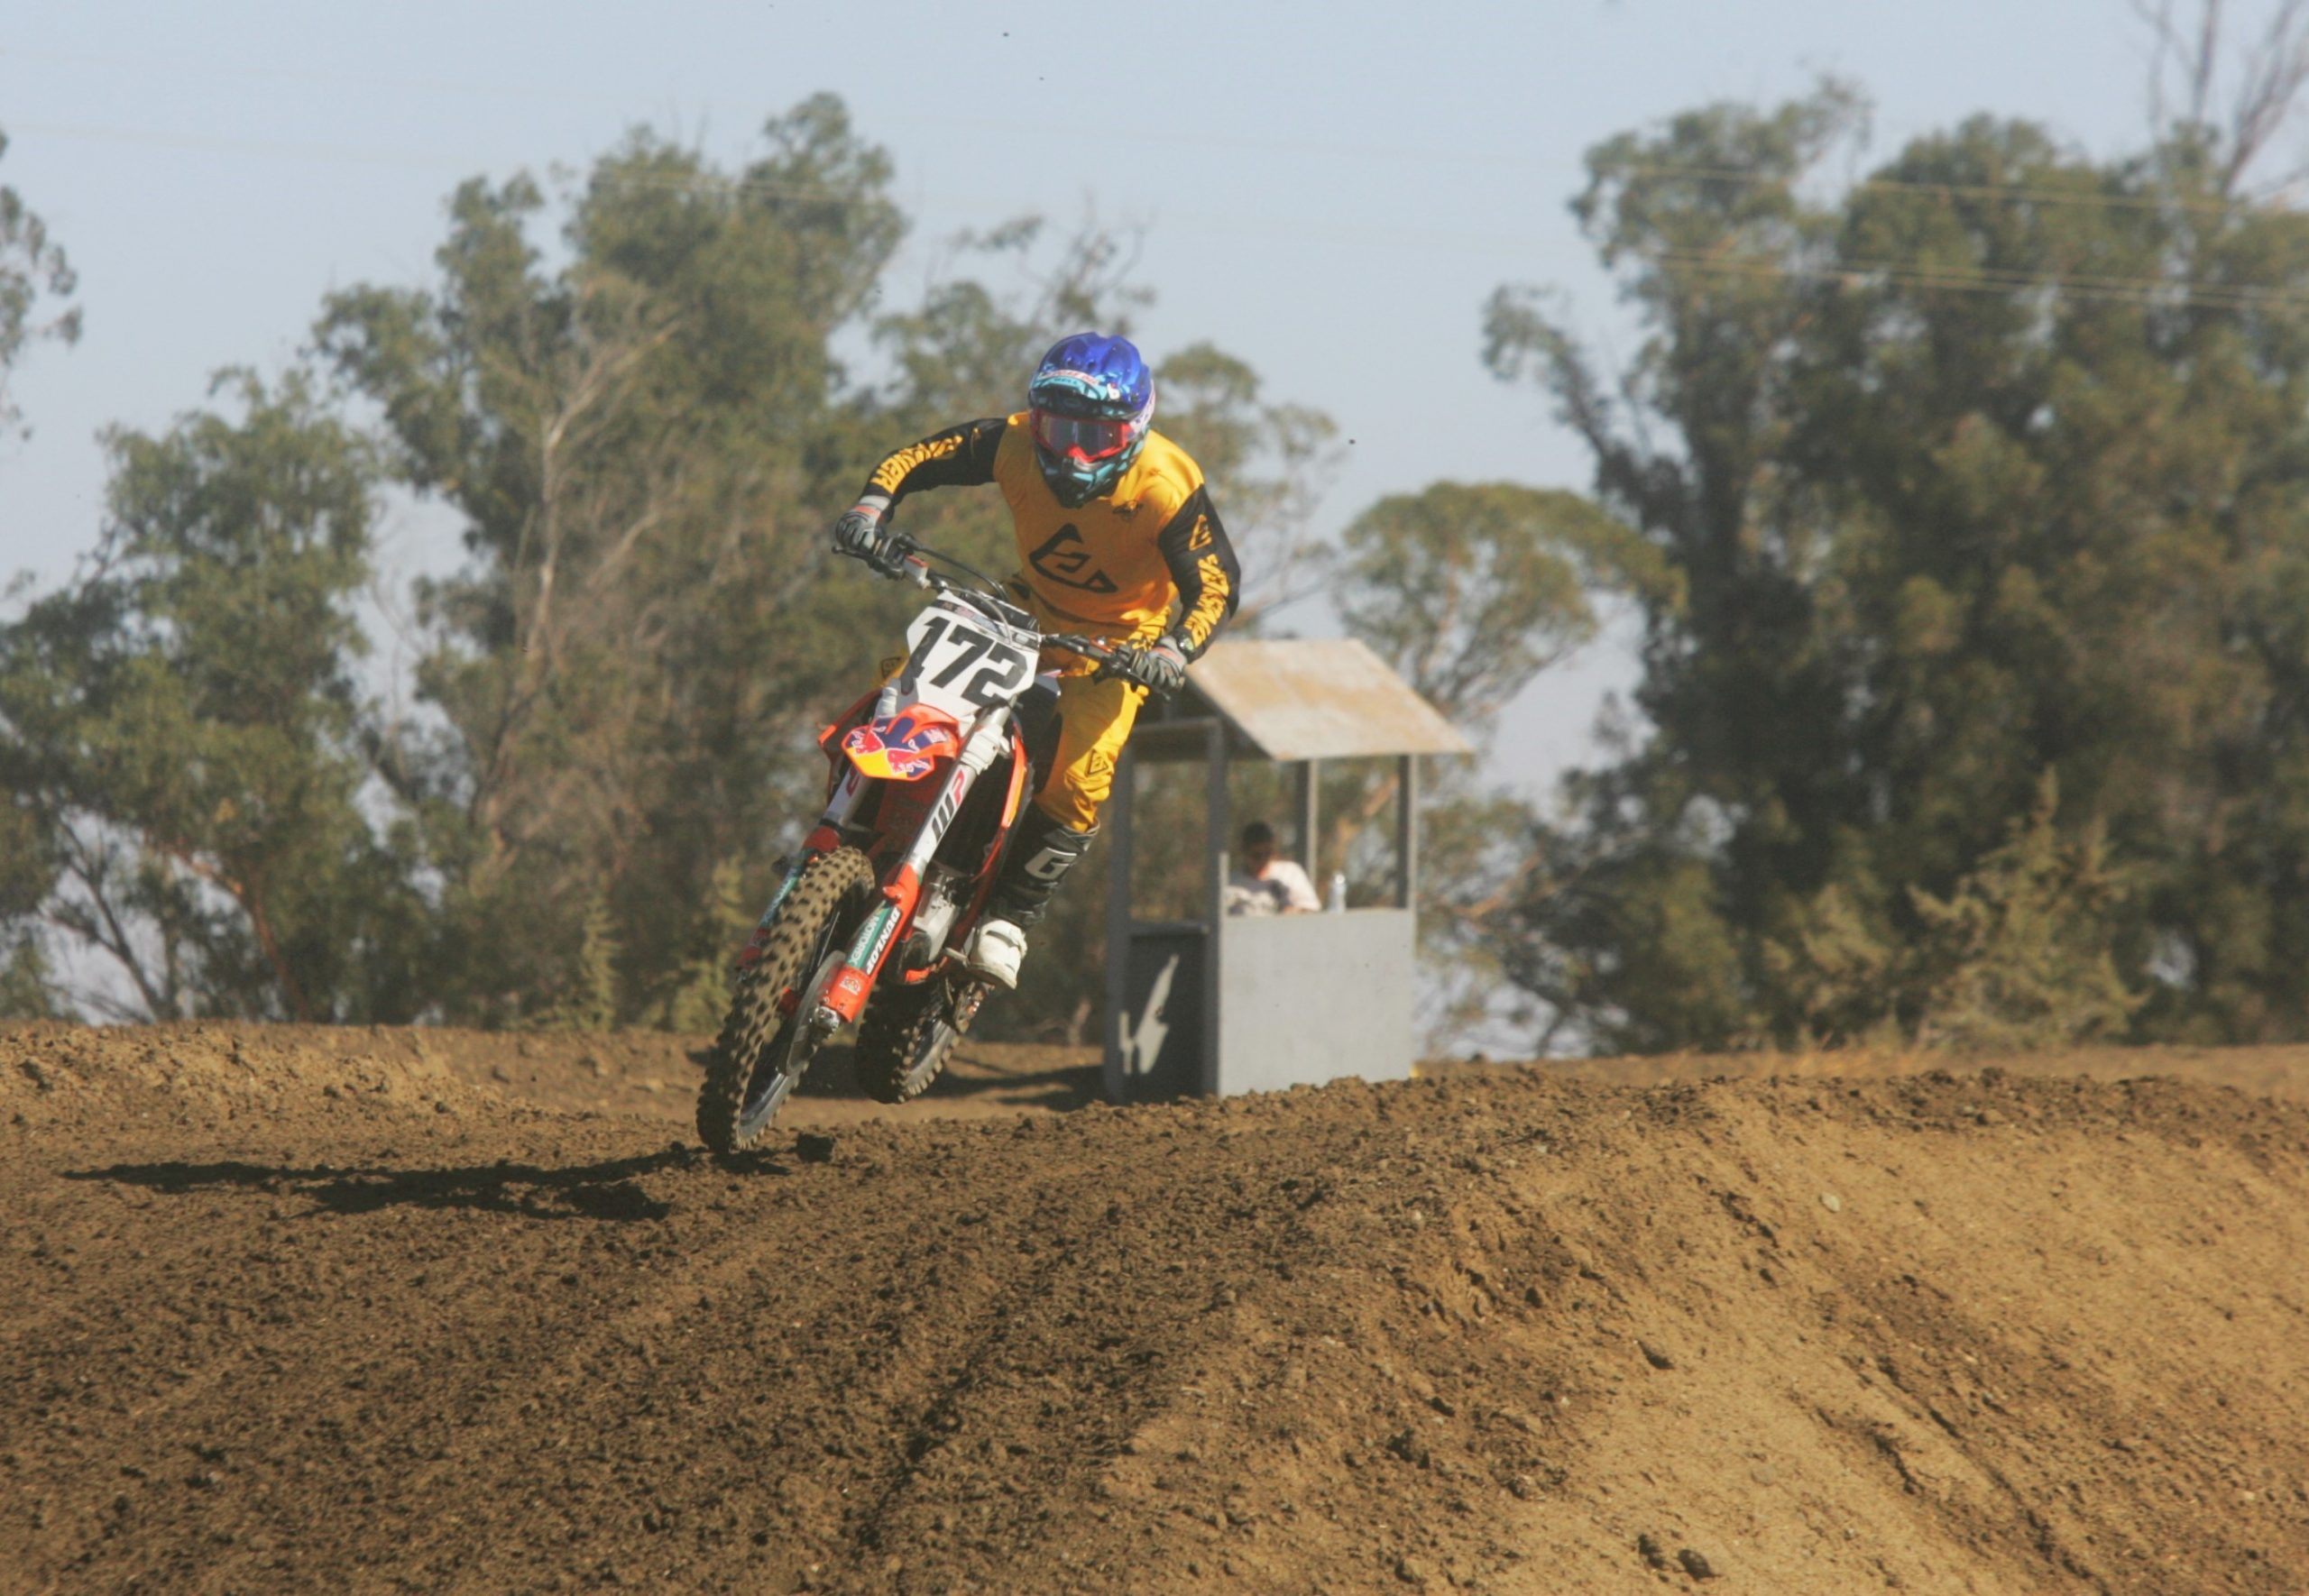 Correctional Officer Ronald De Jesus rides the track at the 2020 Fire Police Motocross races.